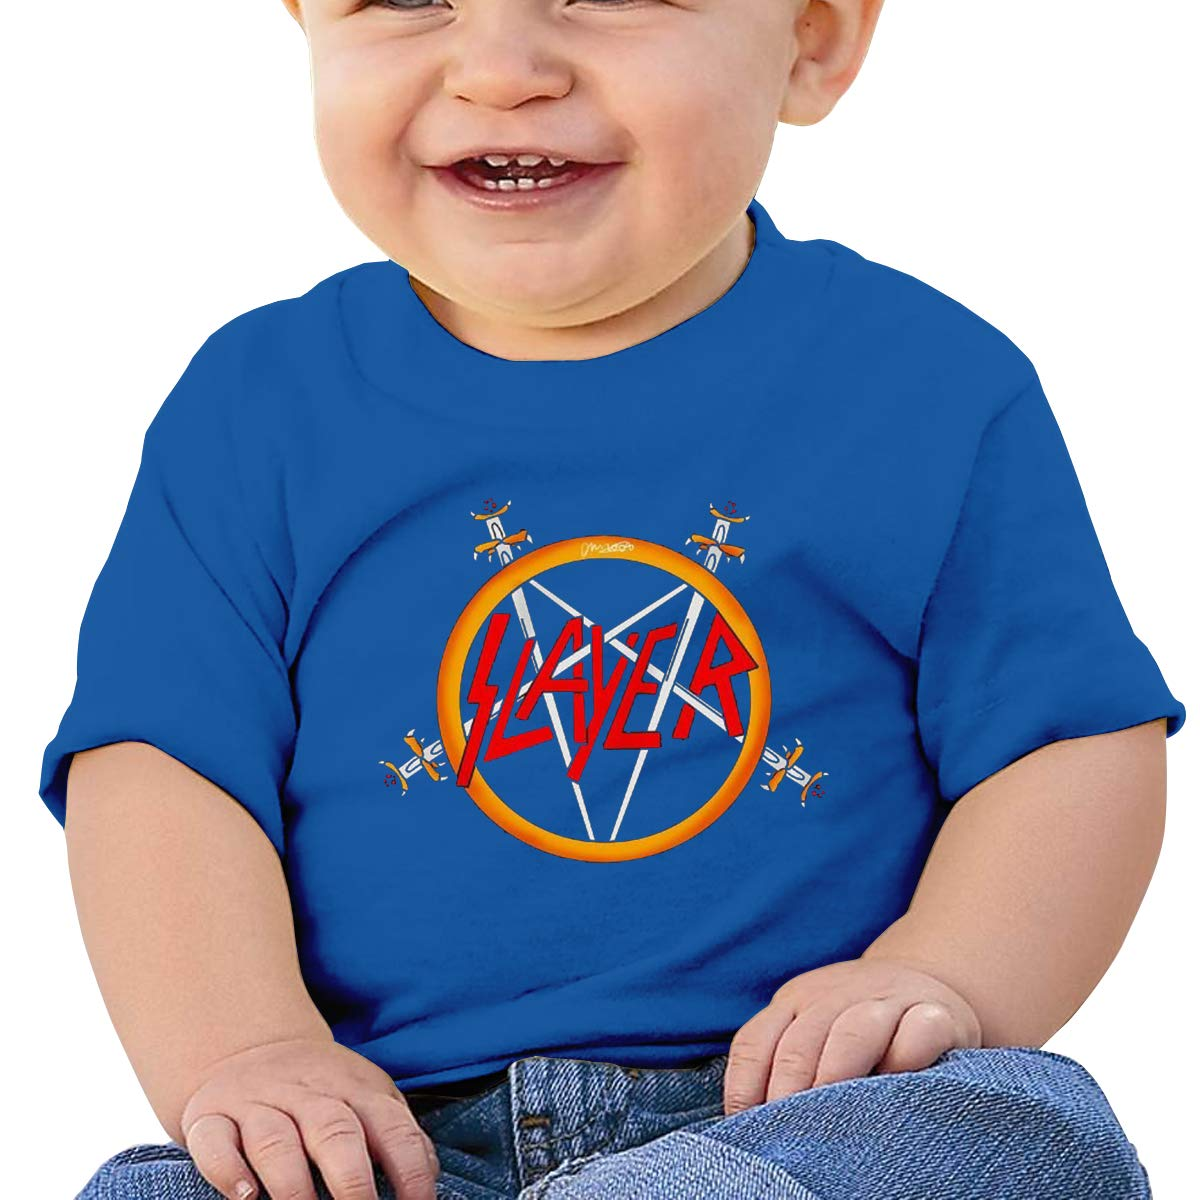 6-24 Month Baby T-Shirt MaNeg Slayer Rock Band New Personality Cool Trend Creation Blue